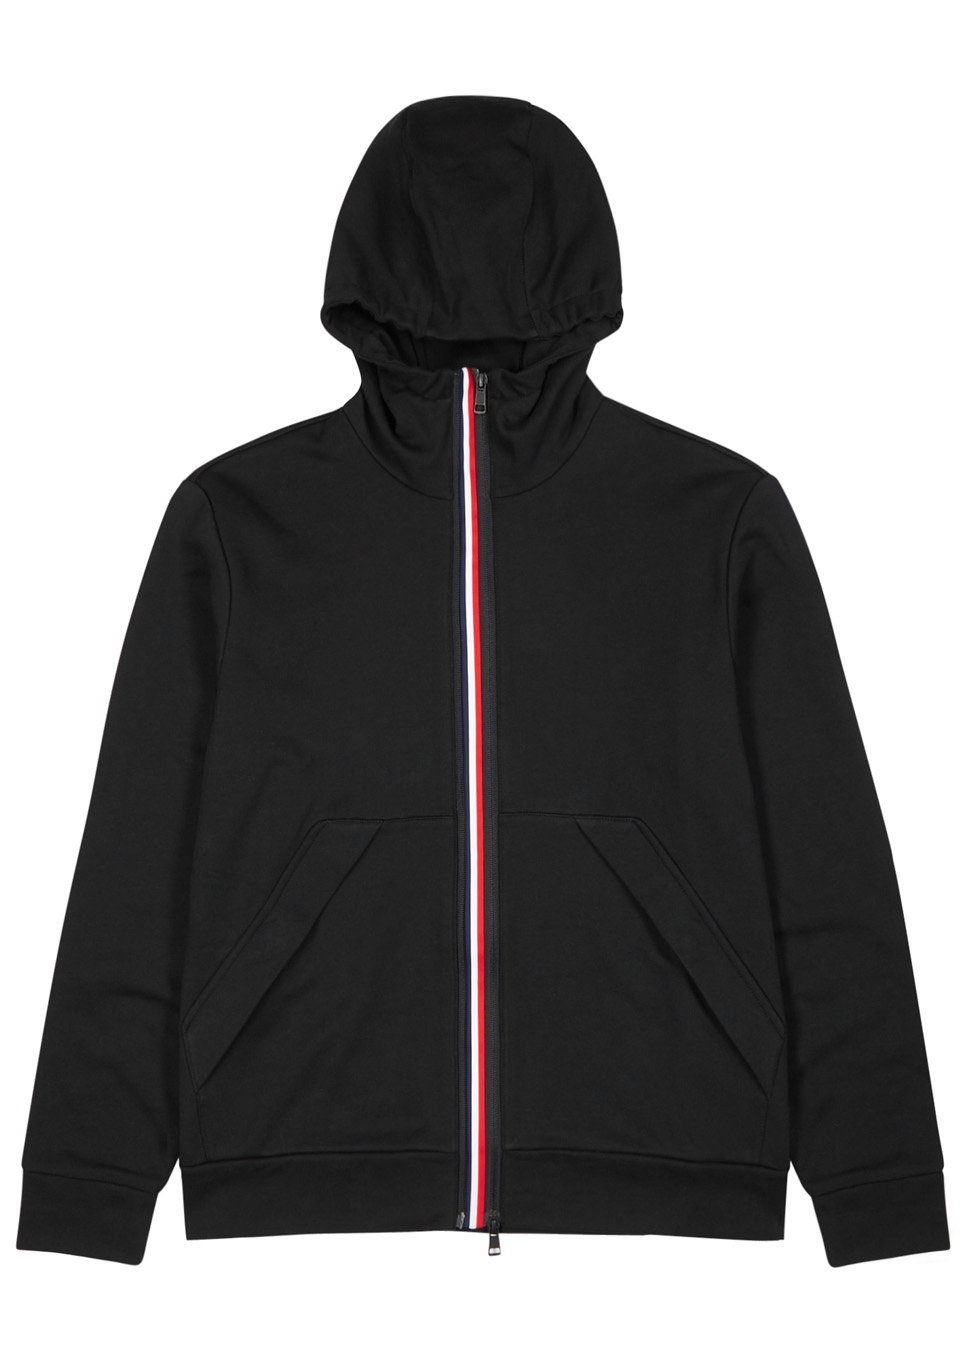 Black hooded cotton sweatshirt ...